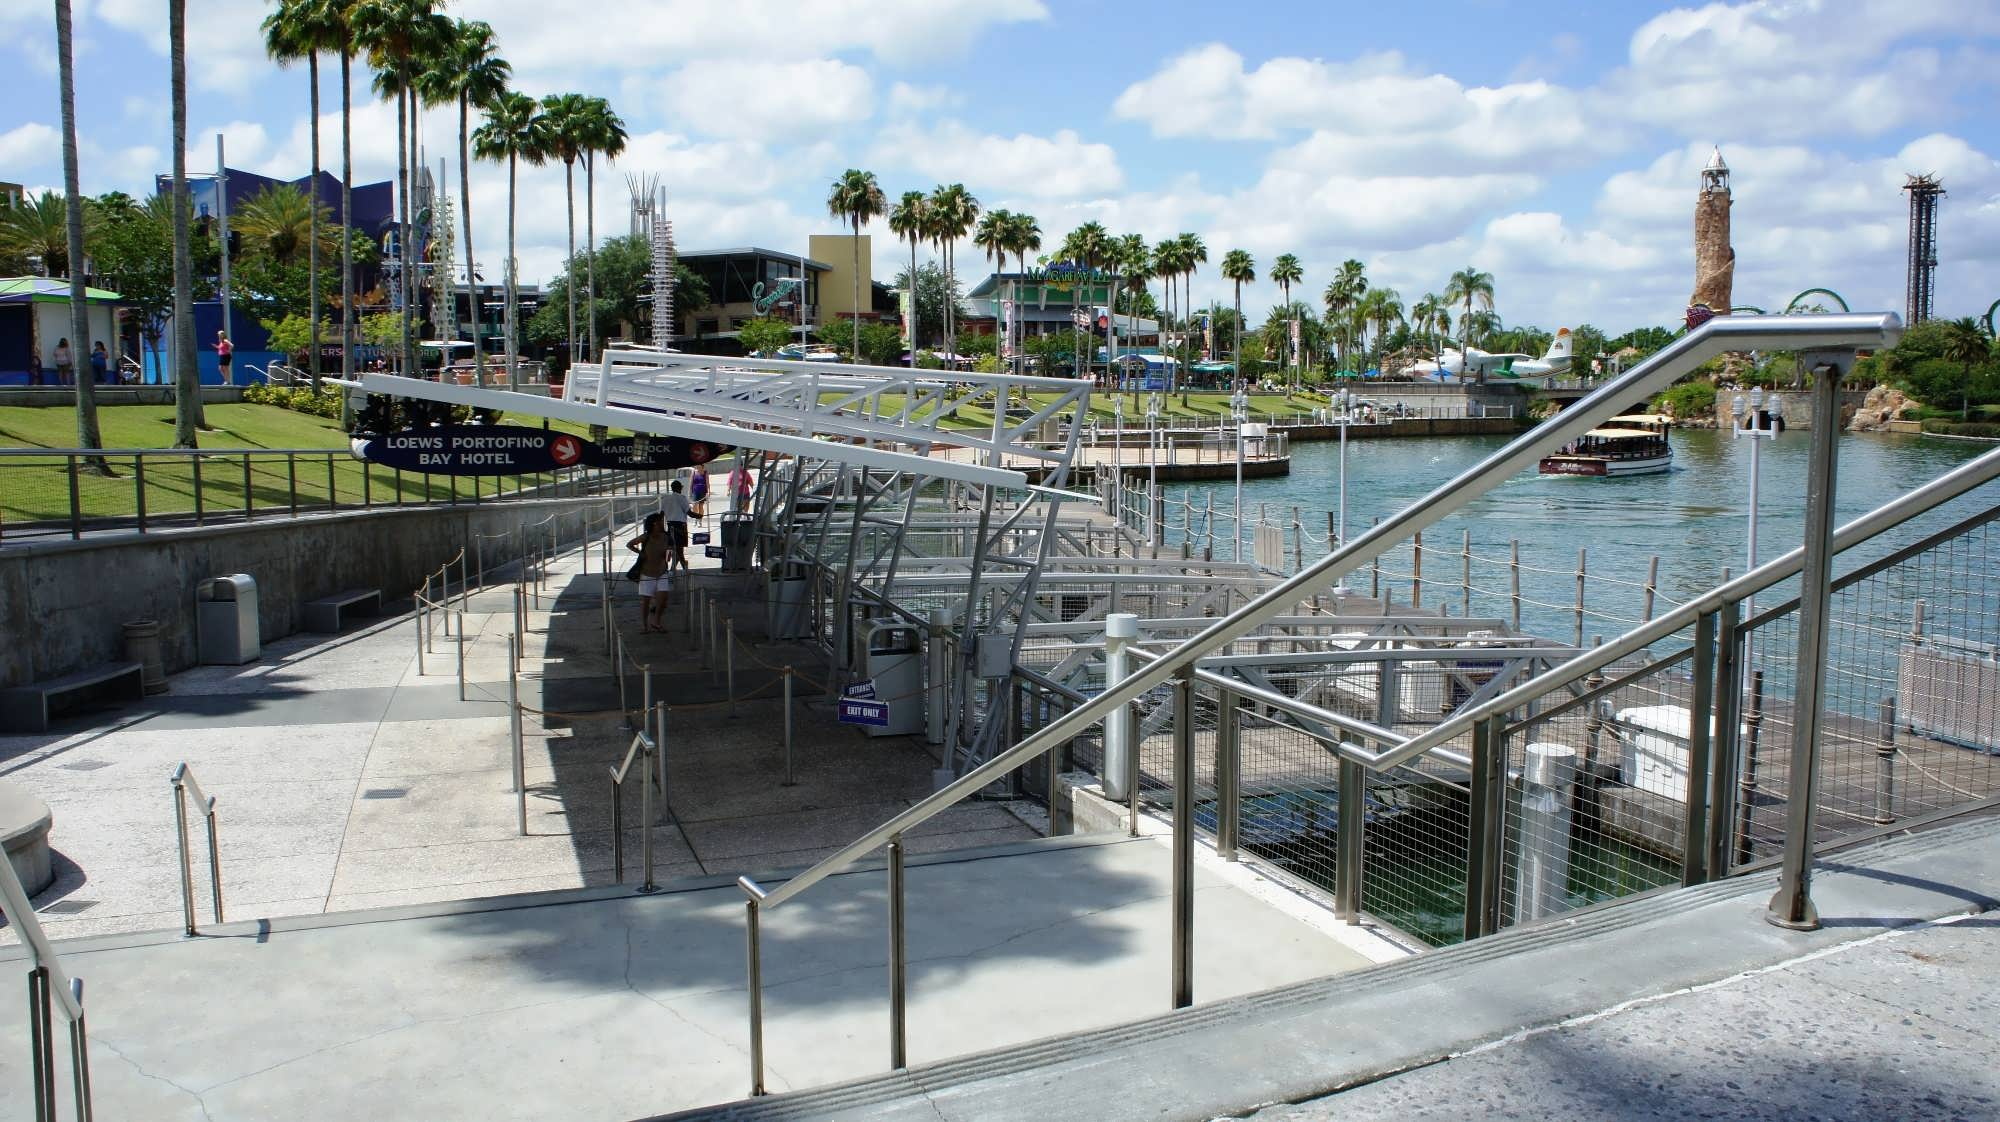 water taxi dock serving CityWalk, Universal Studios Florida, and Islands of Adventure